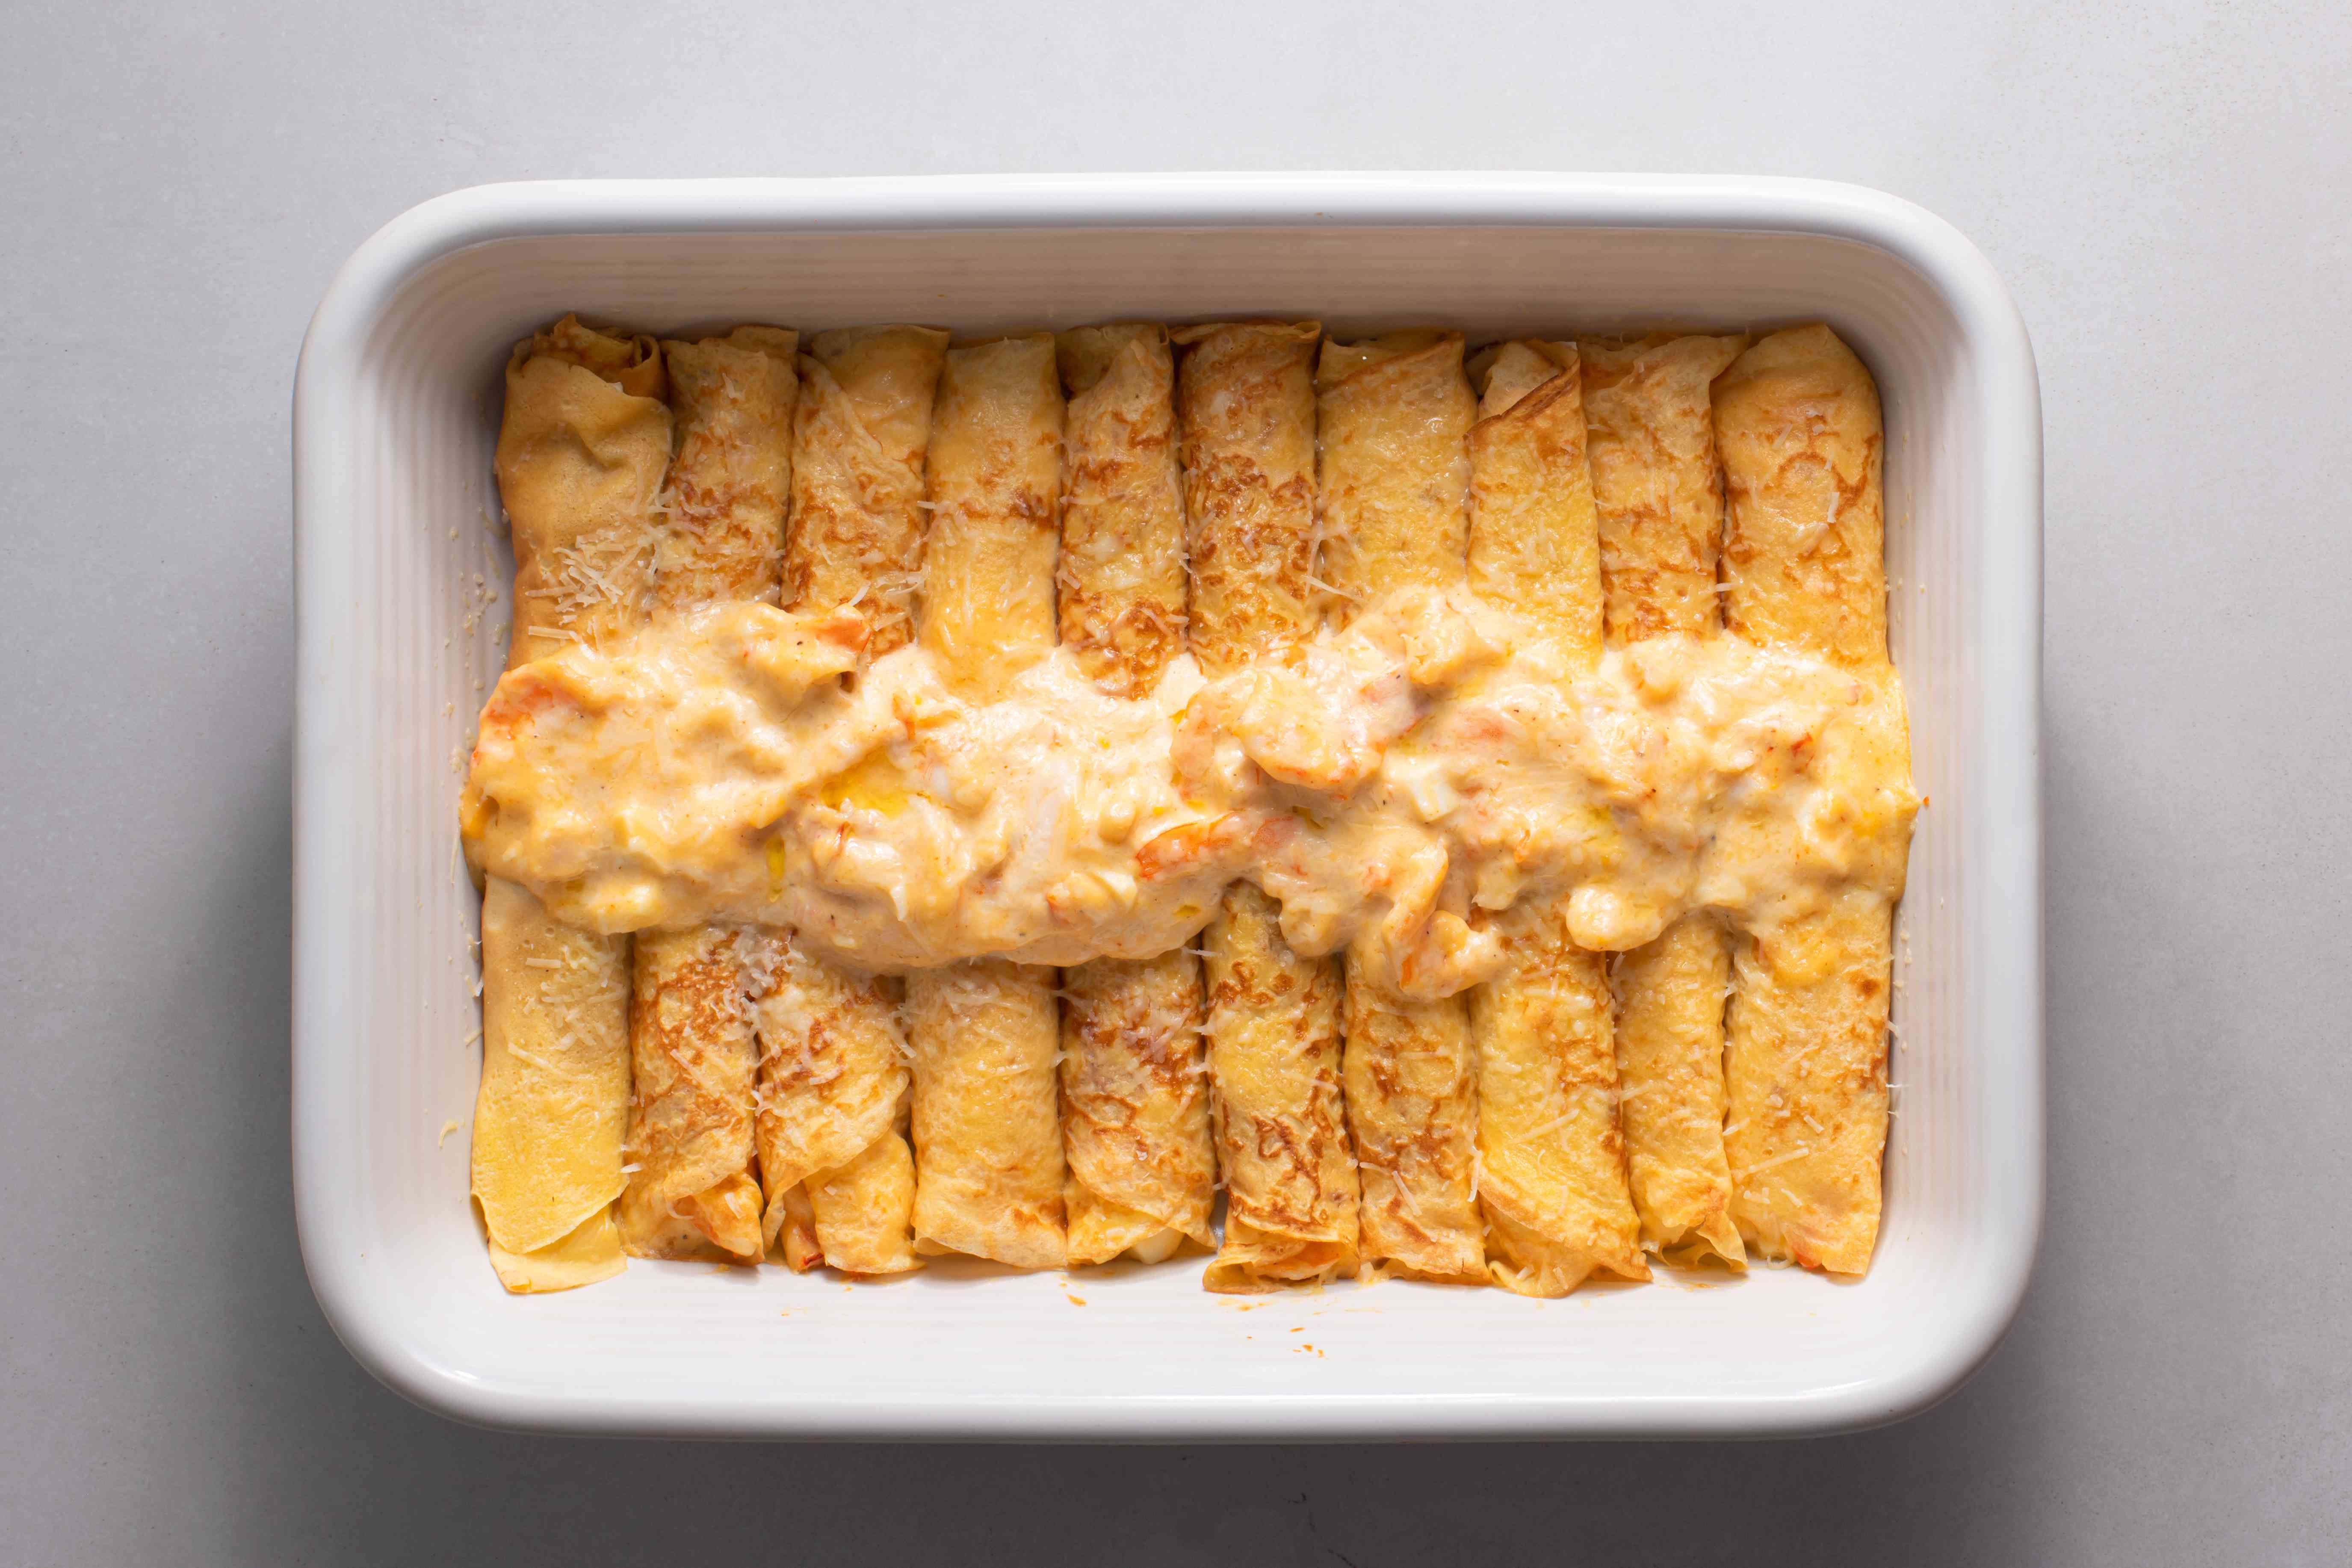 Seafood Crepes With Shrimp & Lobster in a baking dish